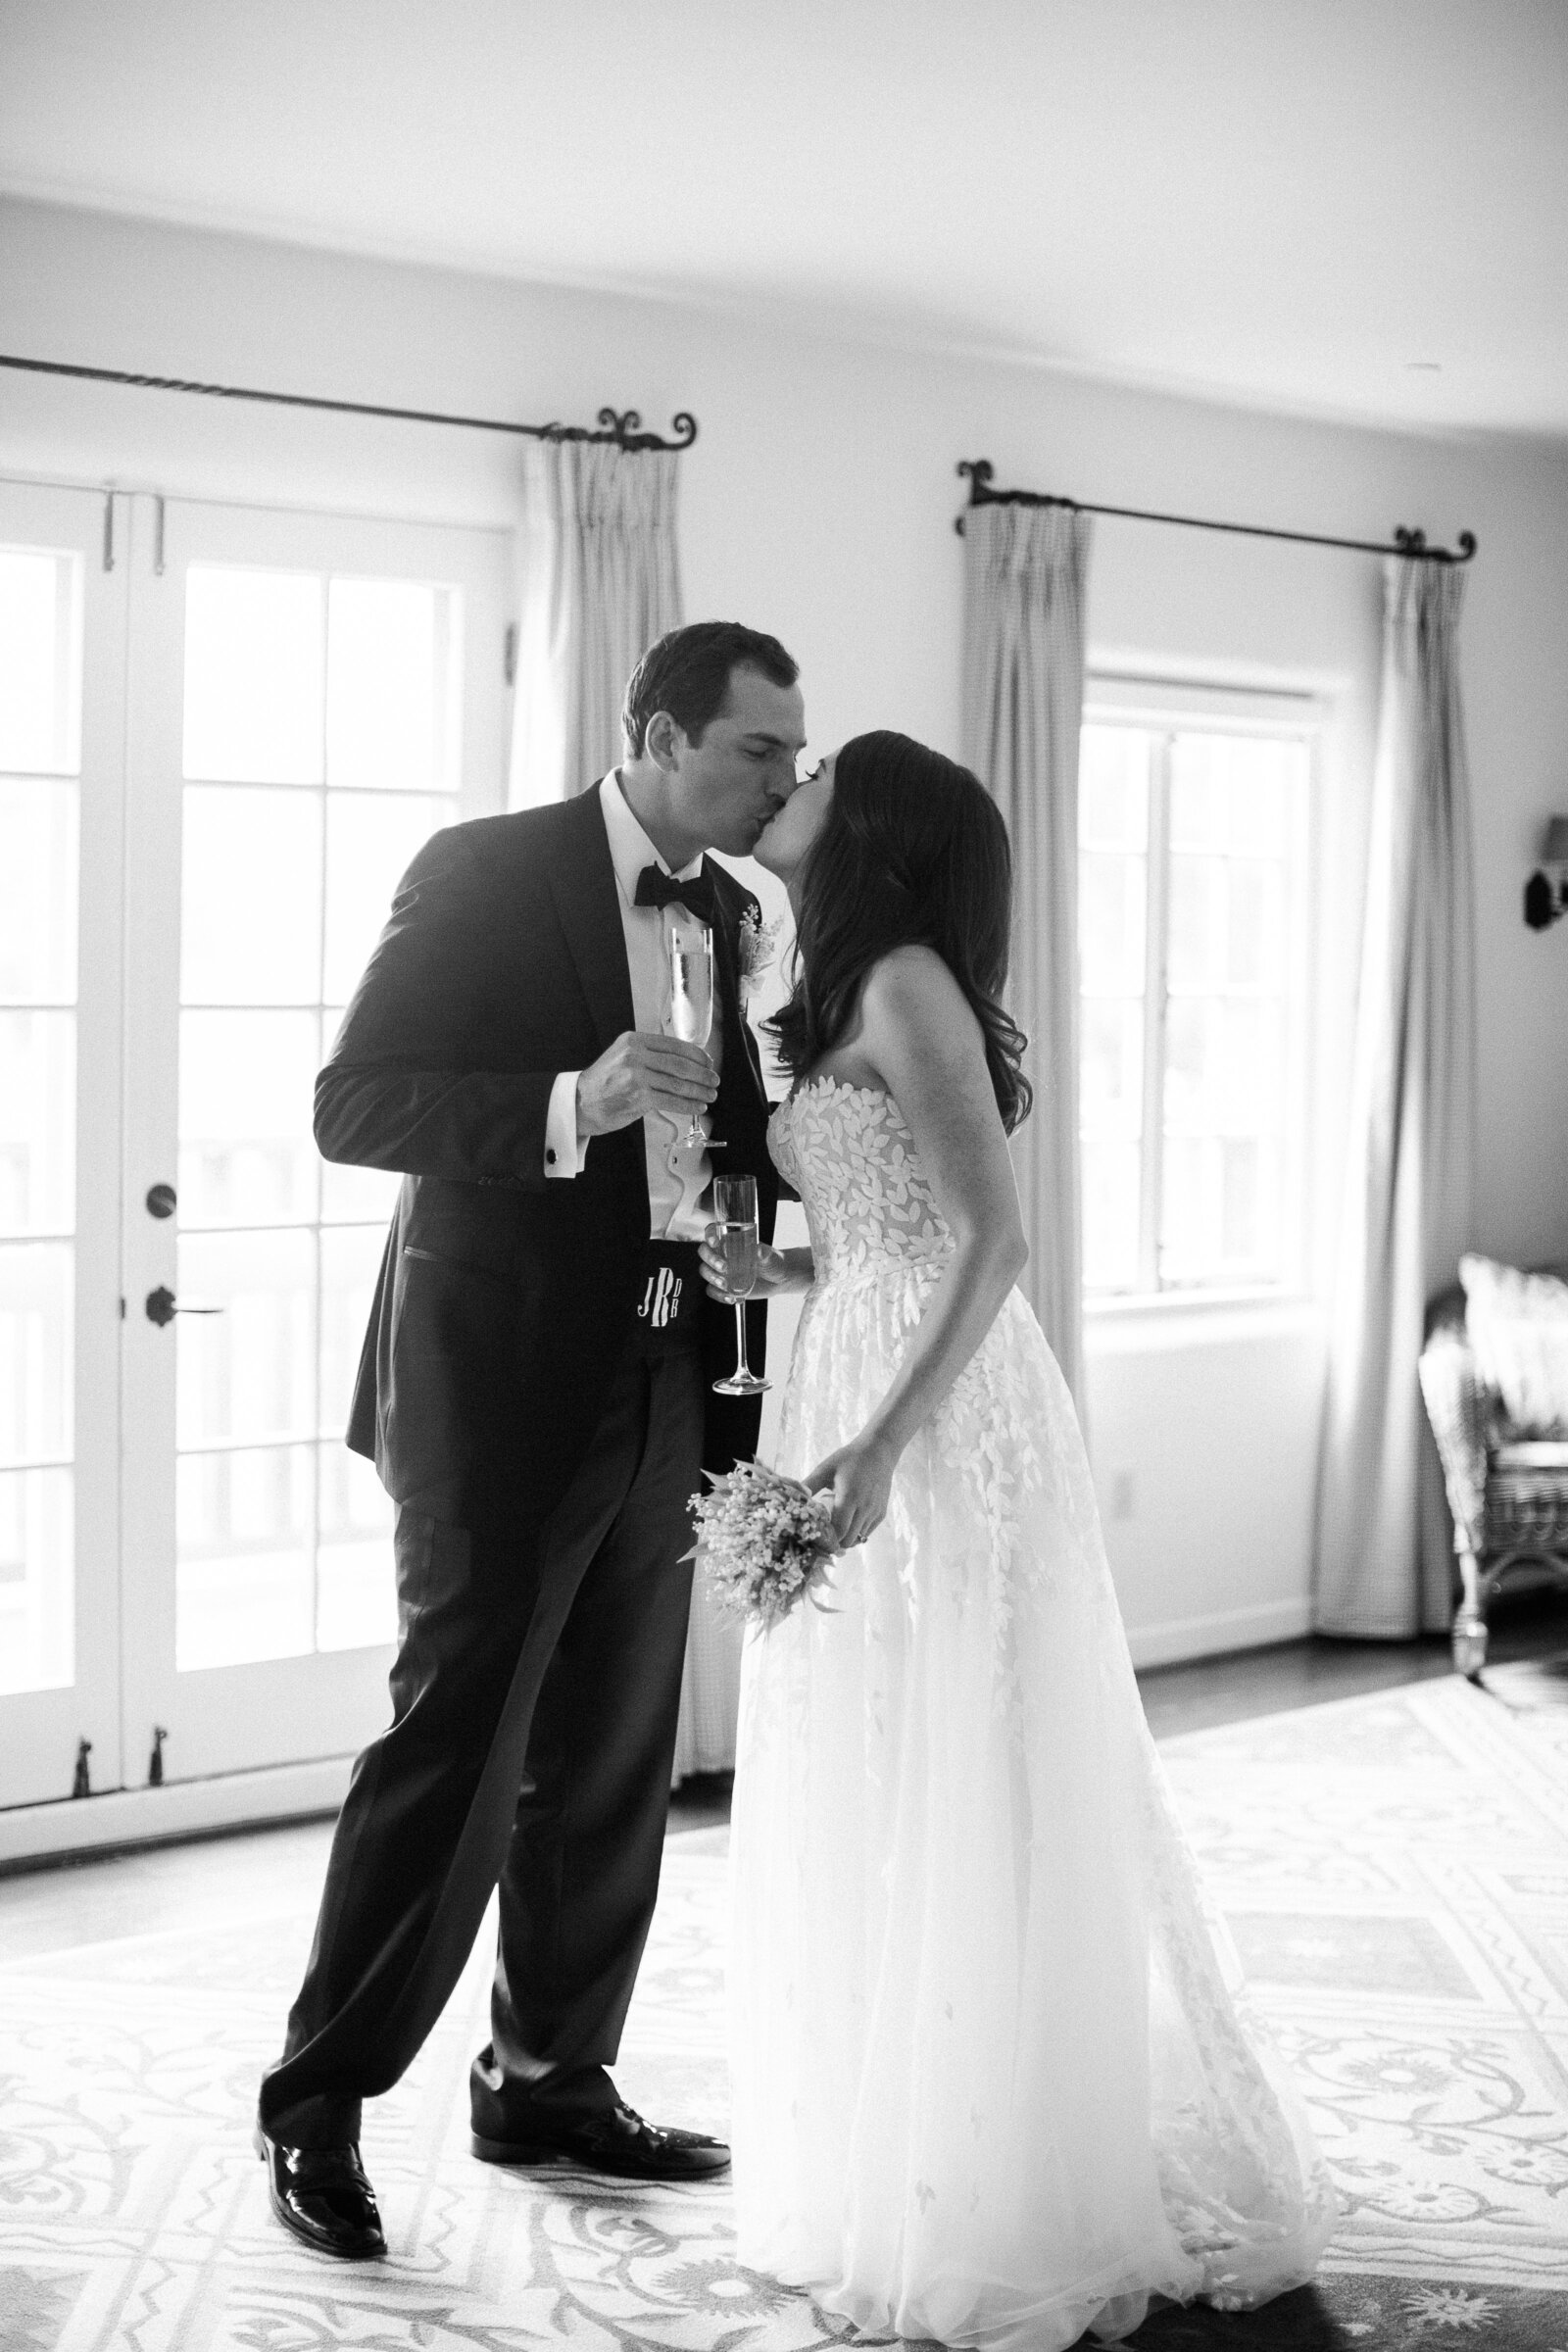 014_larissa-cleveland-photography-CJ-wedding-0232